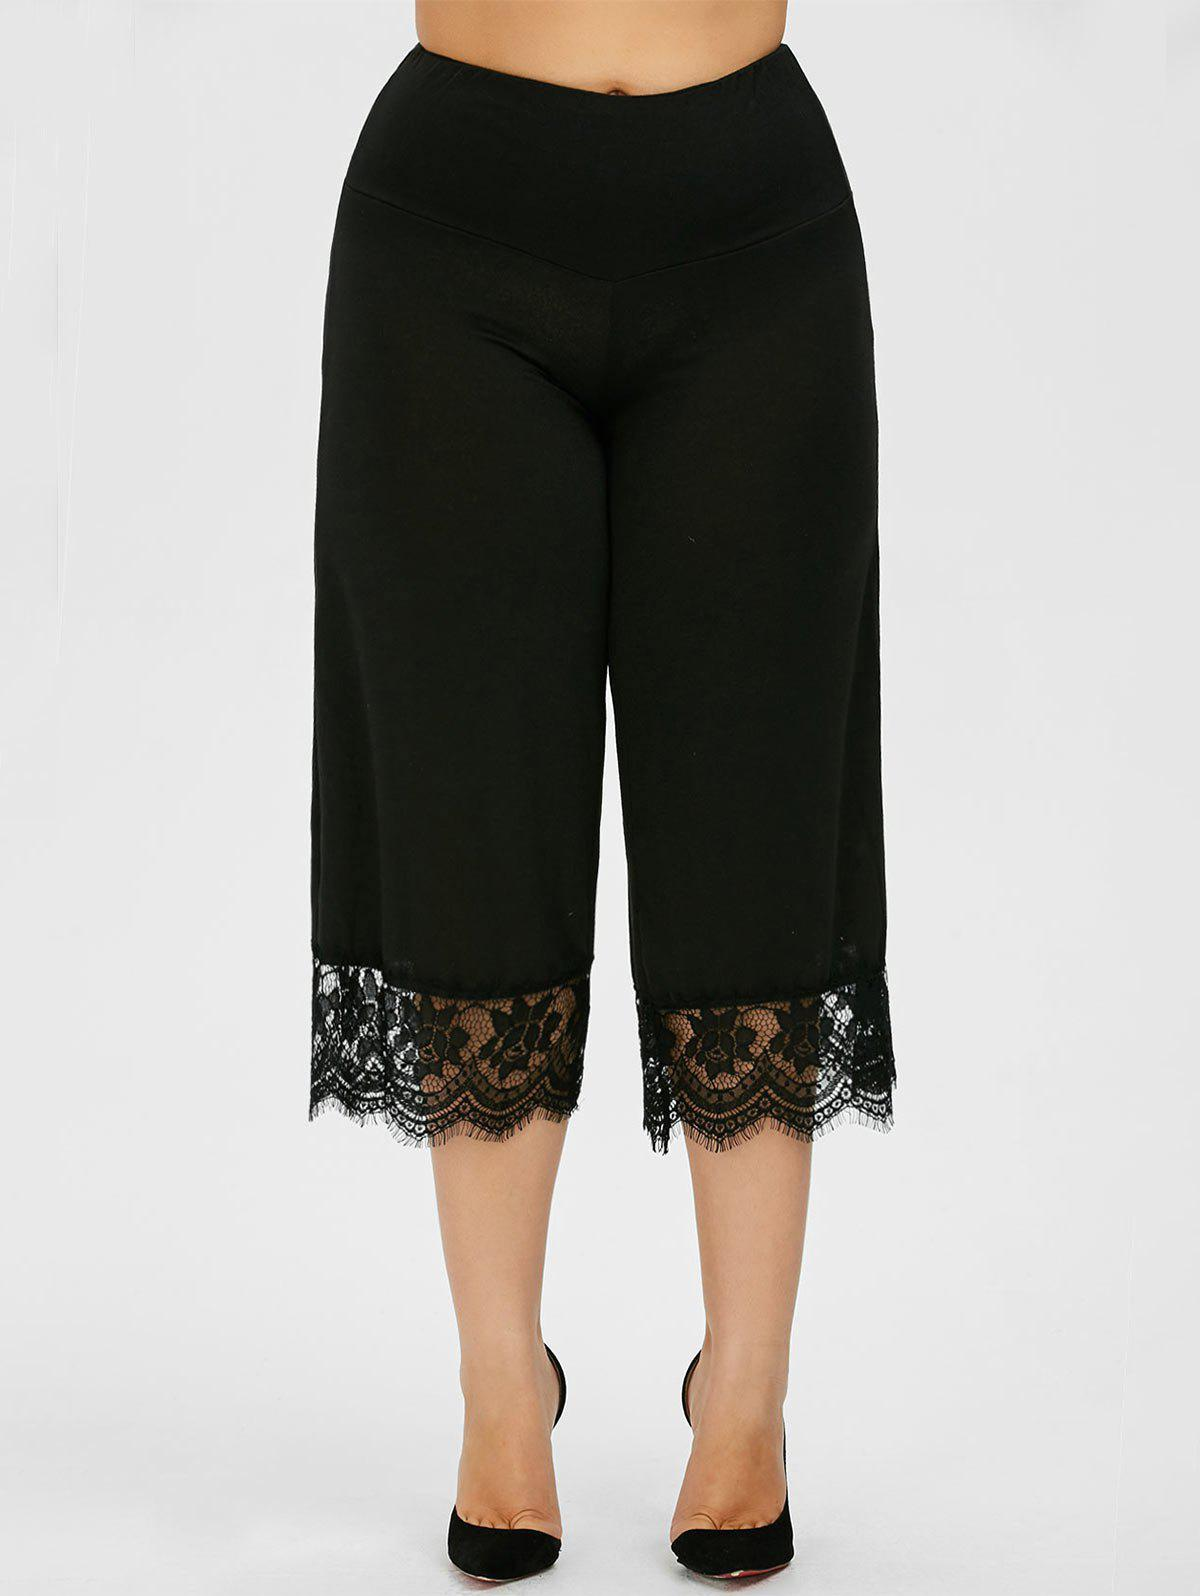 Lace Trim Plus Size Capri Palazzo Pants - BLACK 3XL